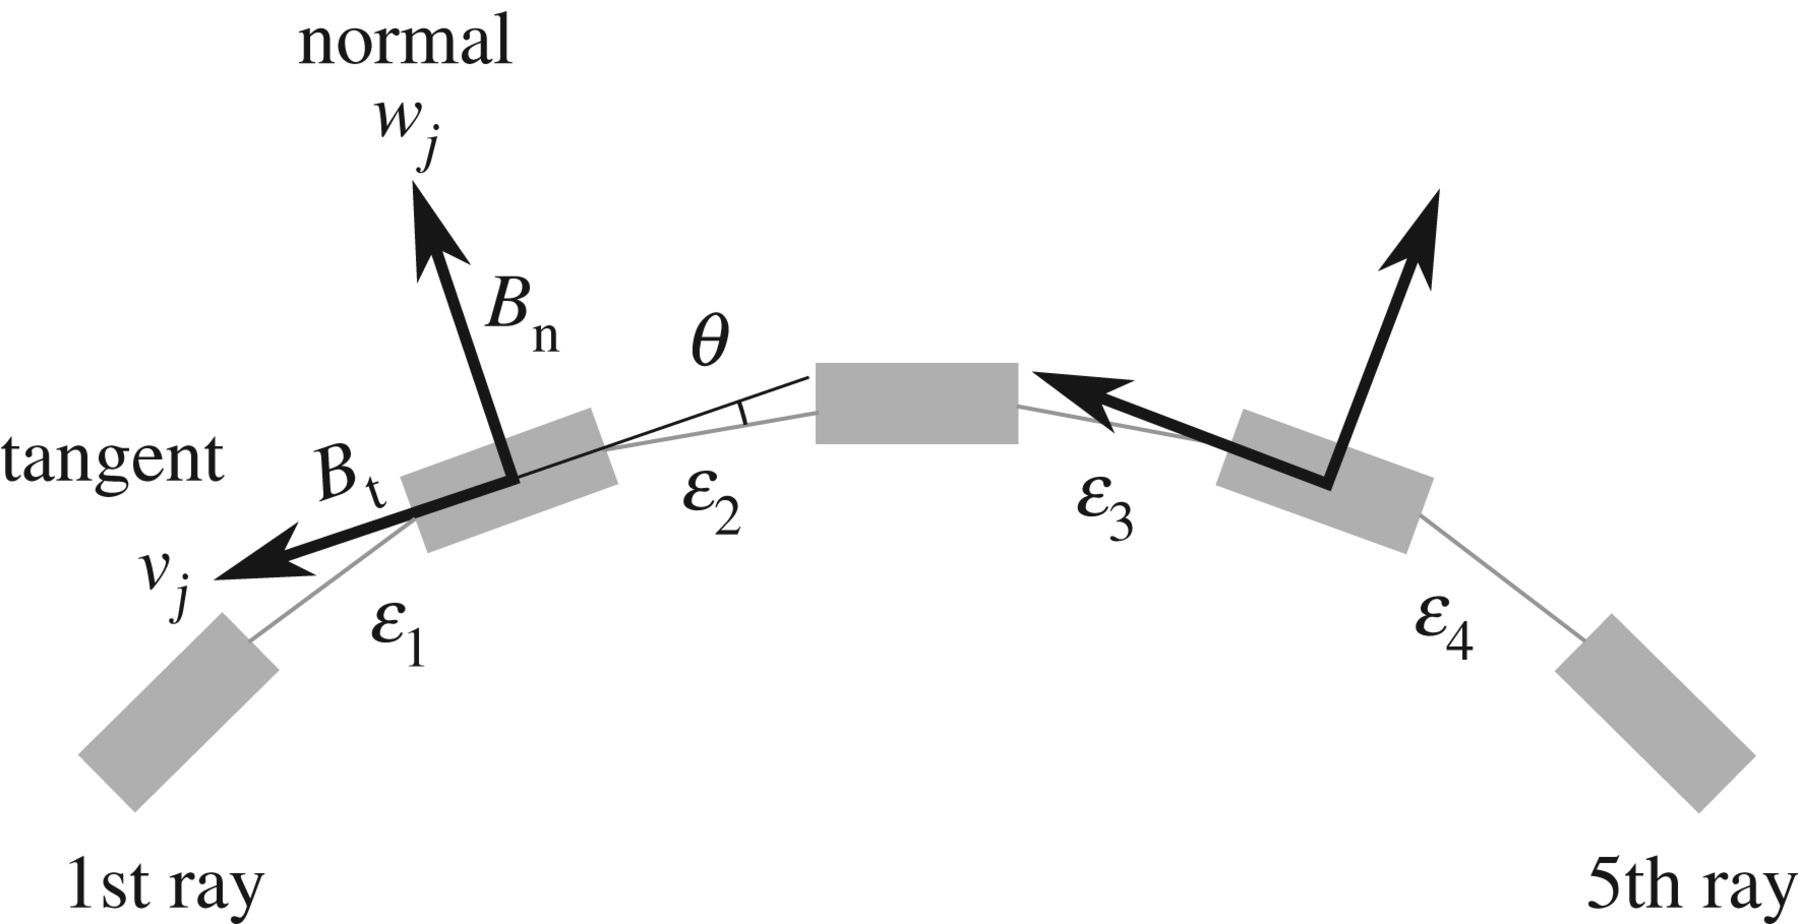 Curvature-induced stiffening of a fish fin | Journal of The